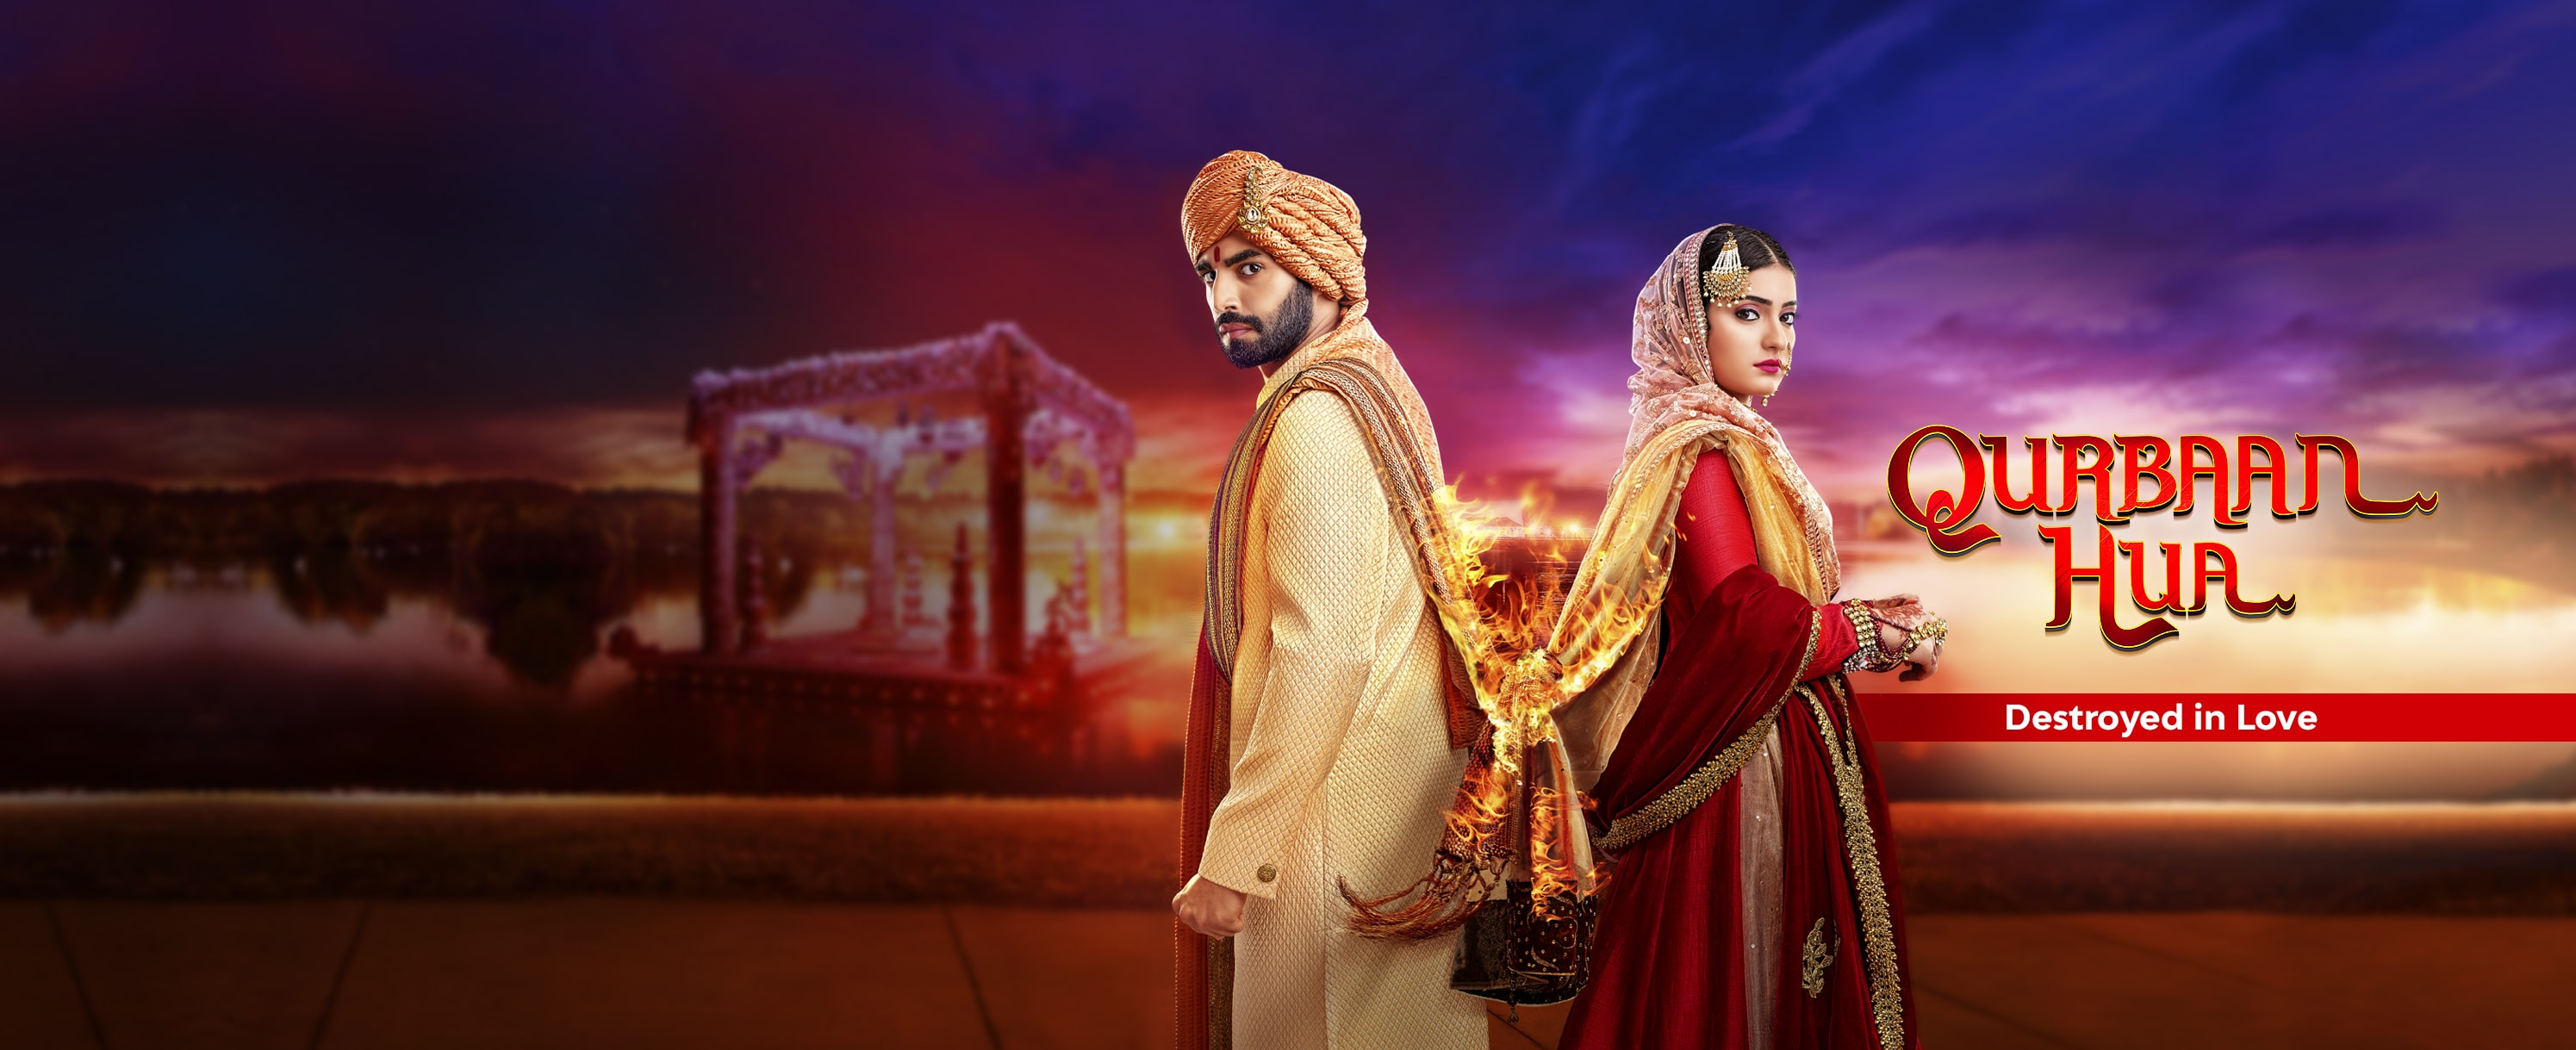 Qurbaan Hua is an intense drama about two passionate individuals caught in a crossfire of destiny, and on a mission driven by love and pride of their families. Despite hailing from starkly different backgrounds and cultures